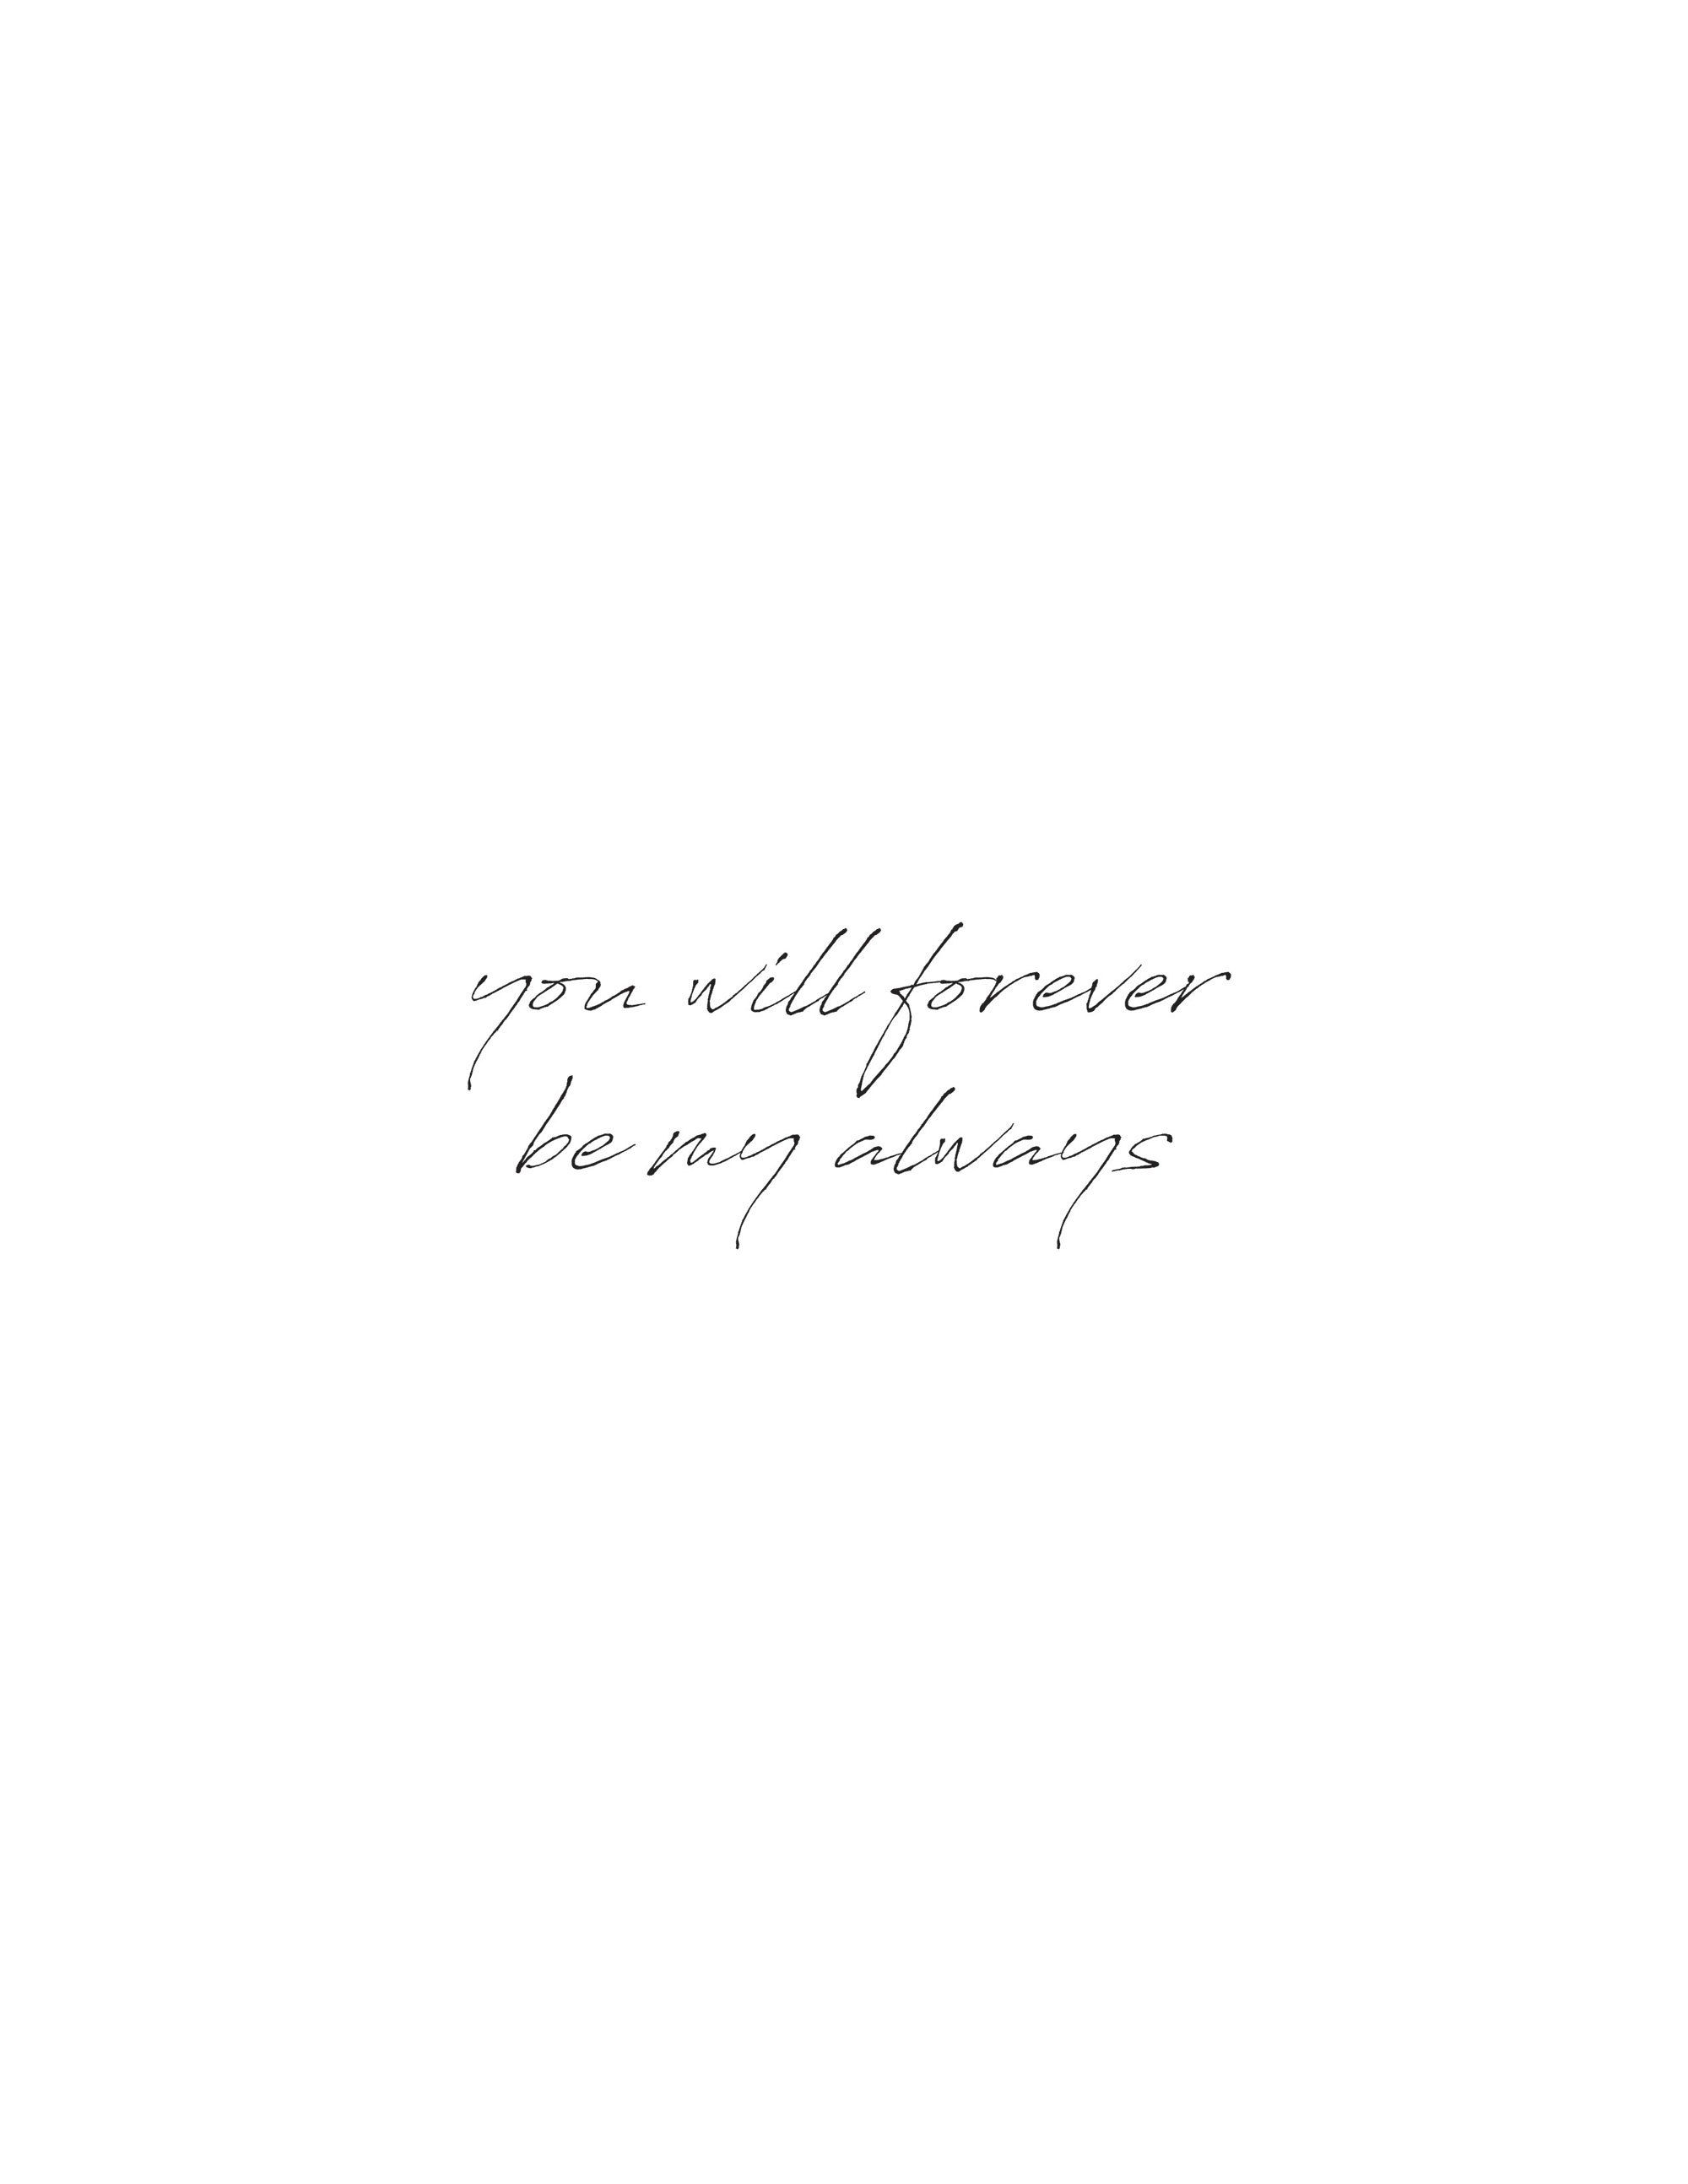 You Will Forever Be My Always Quote & Wall Art. Free printable from The Okie Home. Just print, frame, and hang!